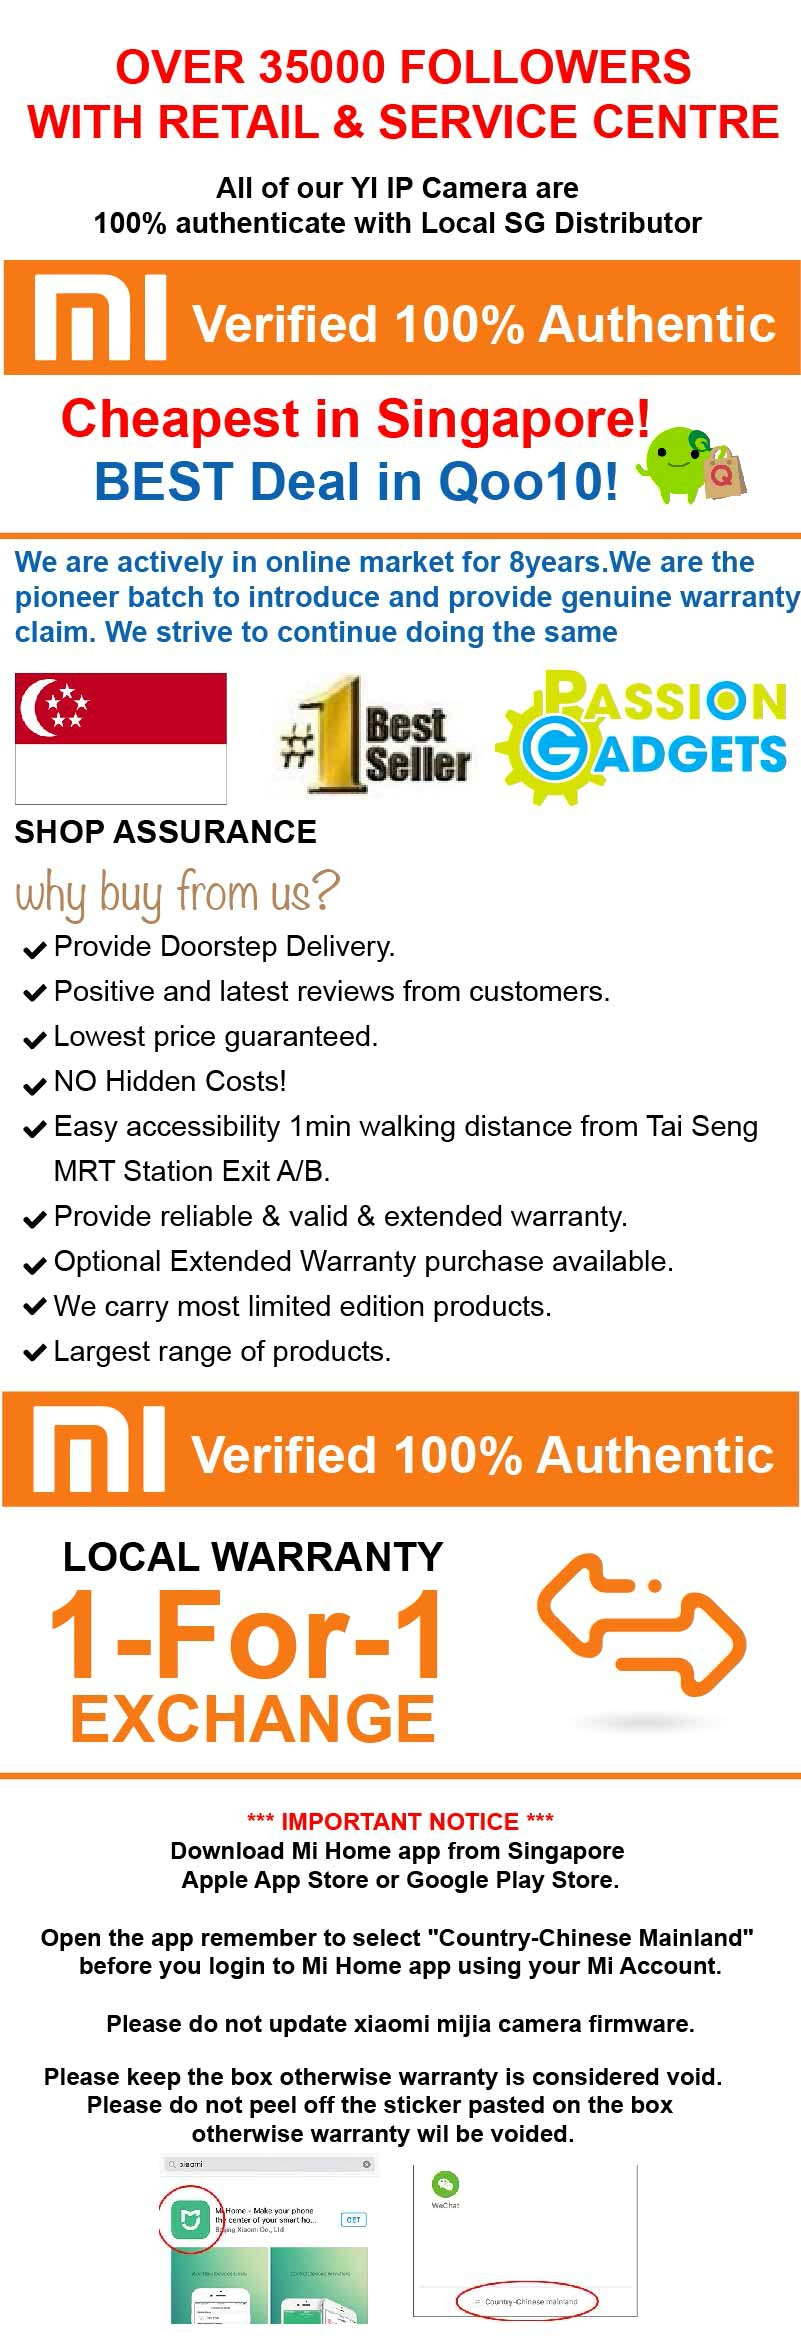 Buy XIAOMi Mijia XiaoFang DaFang Smart IP Camera Baby Monitor CCTV / Night  Vision 1080P Deals for only S$17 87 instead of S$0